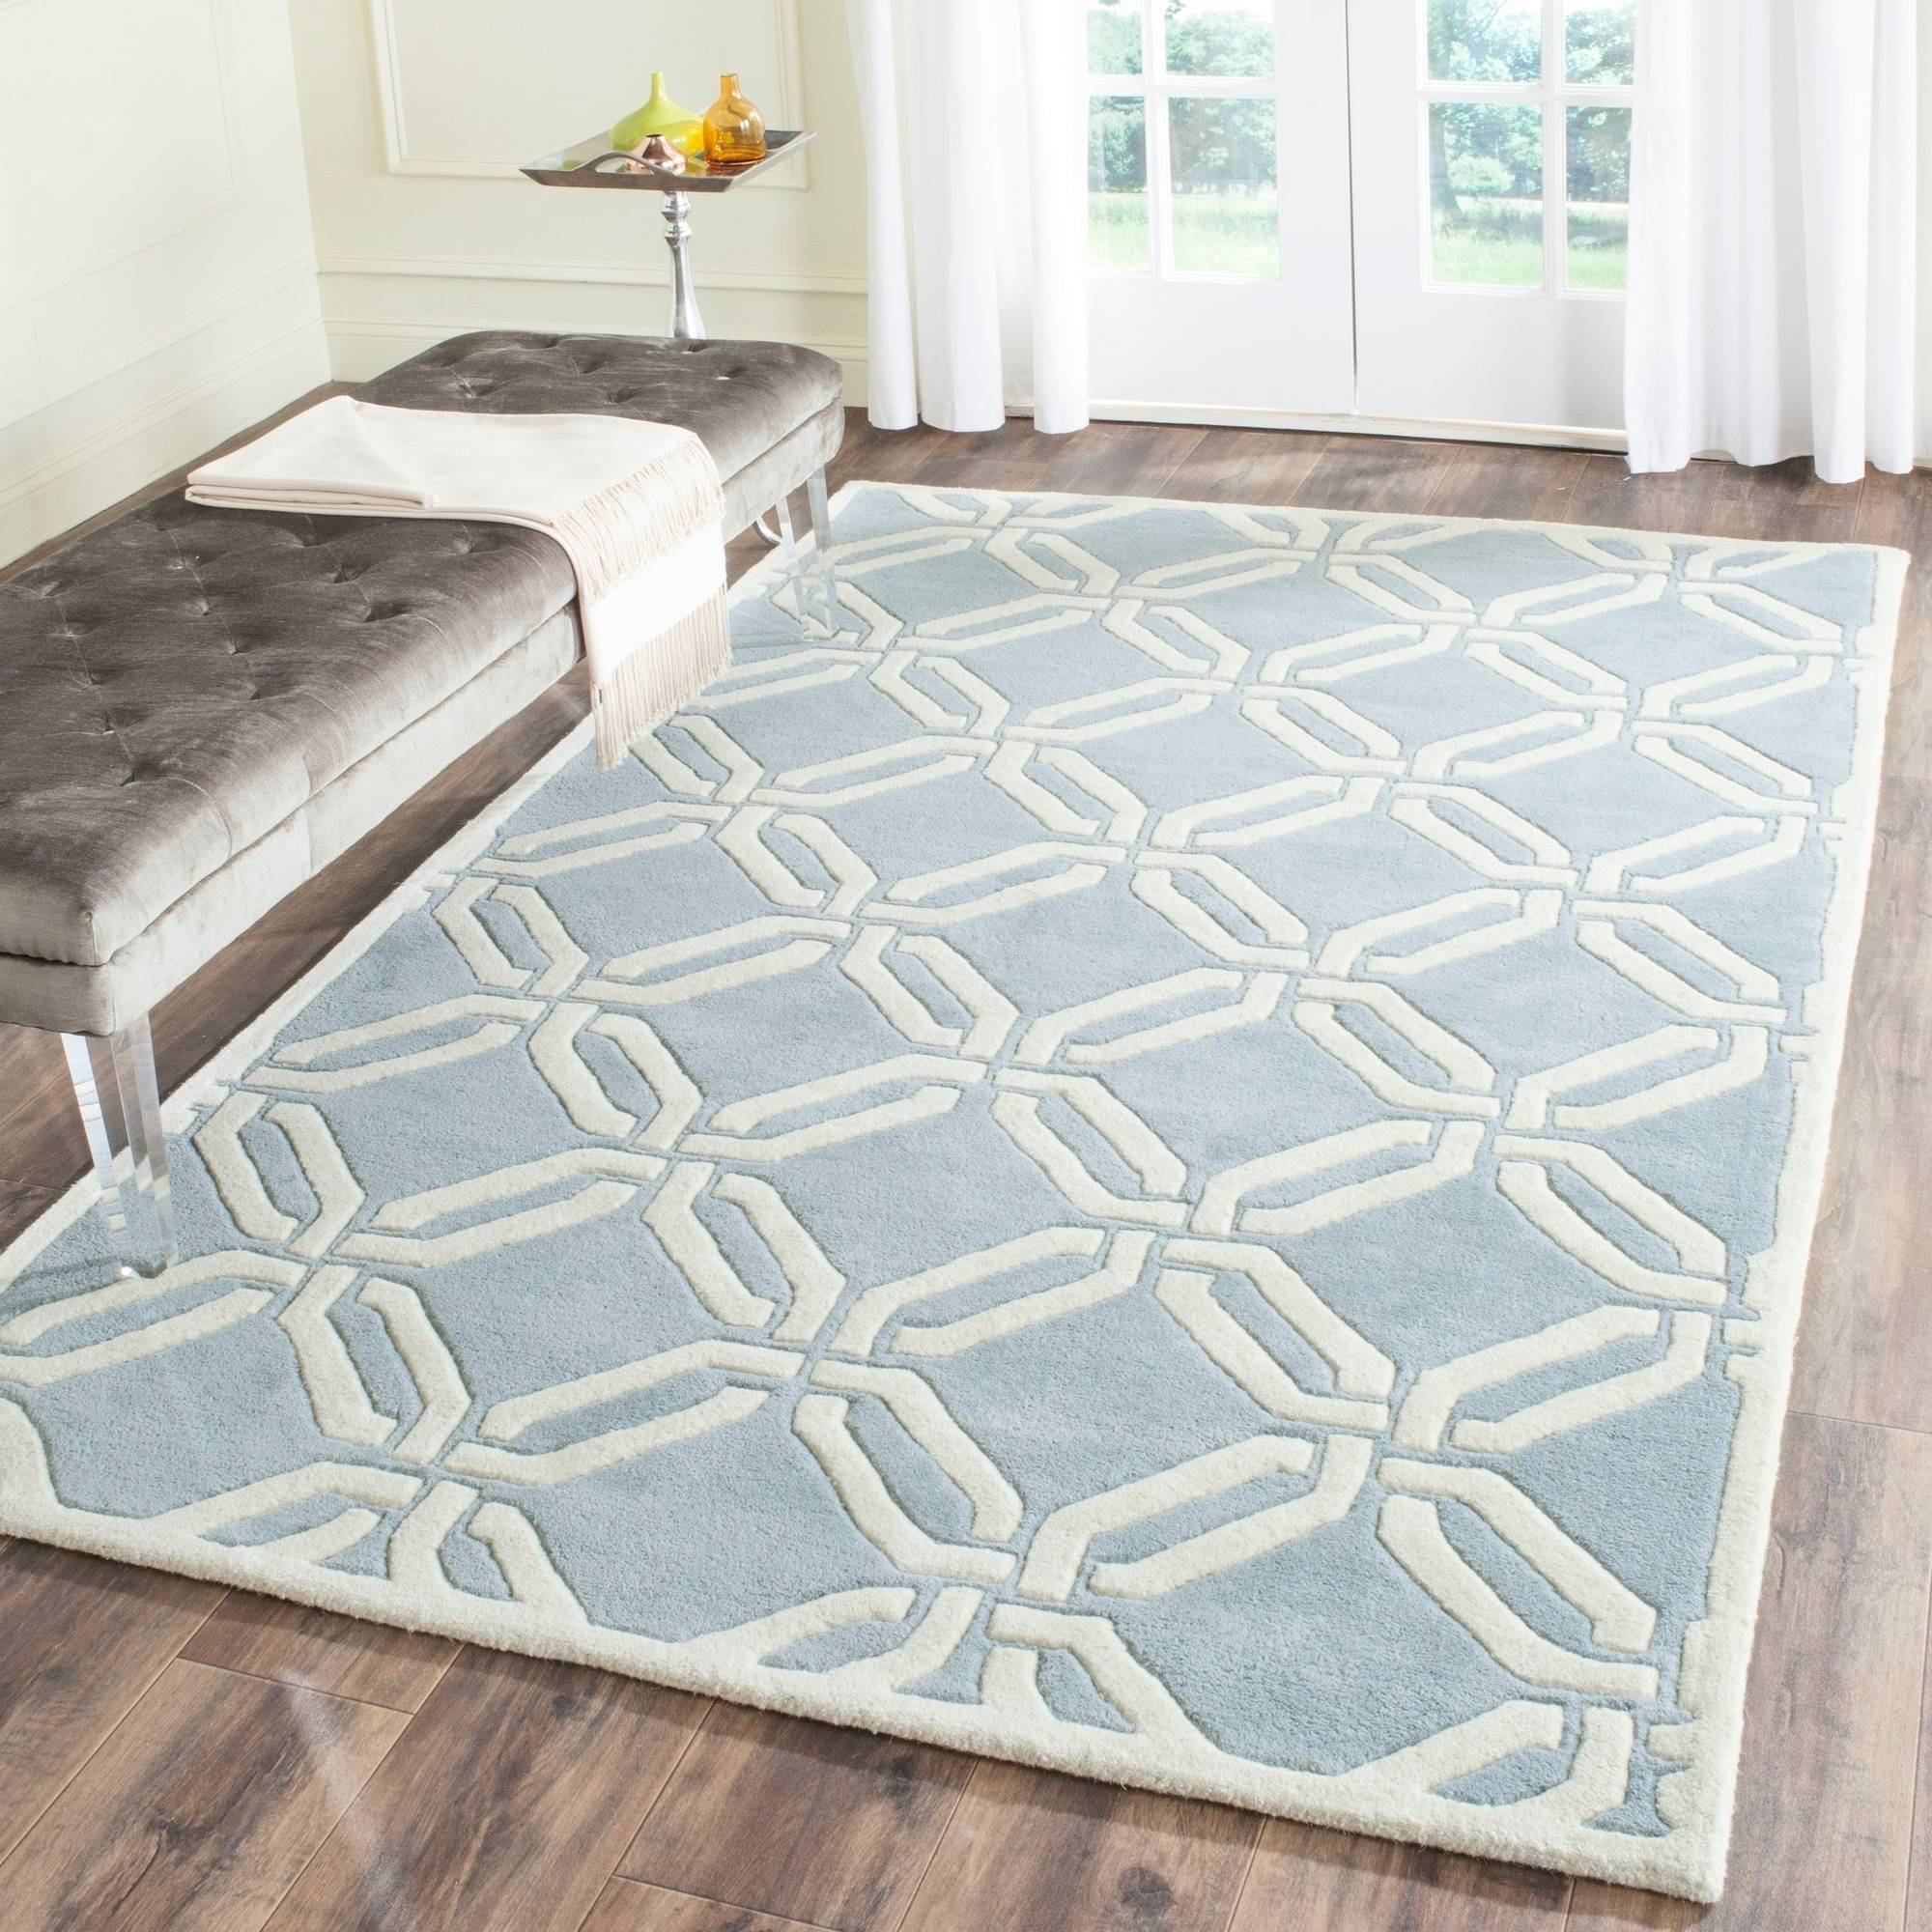 Safavieh Chatham Lennon Hand-Tufted Wool Area Rug